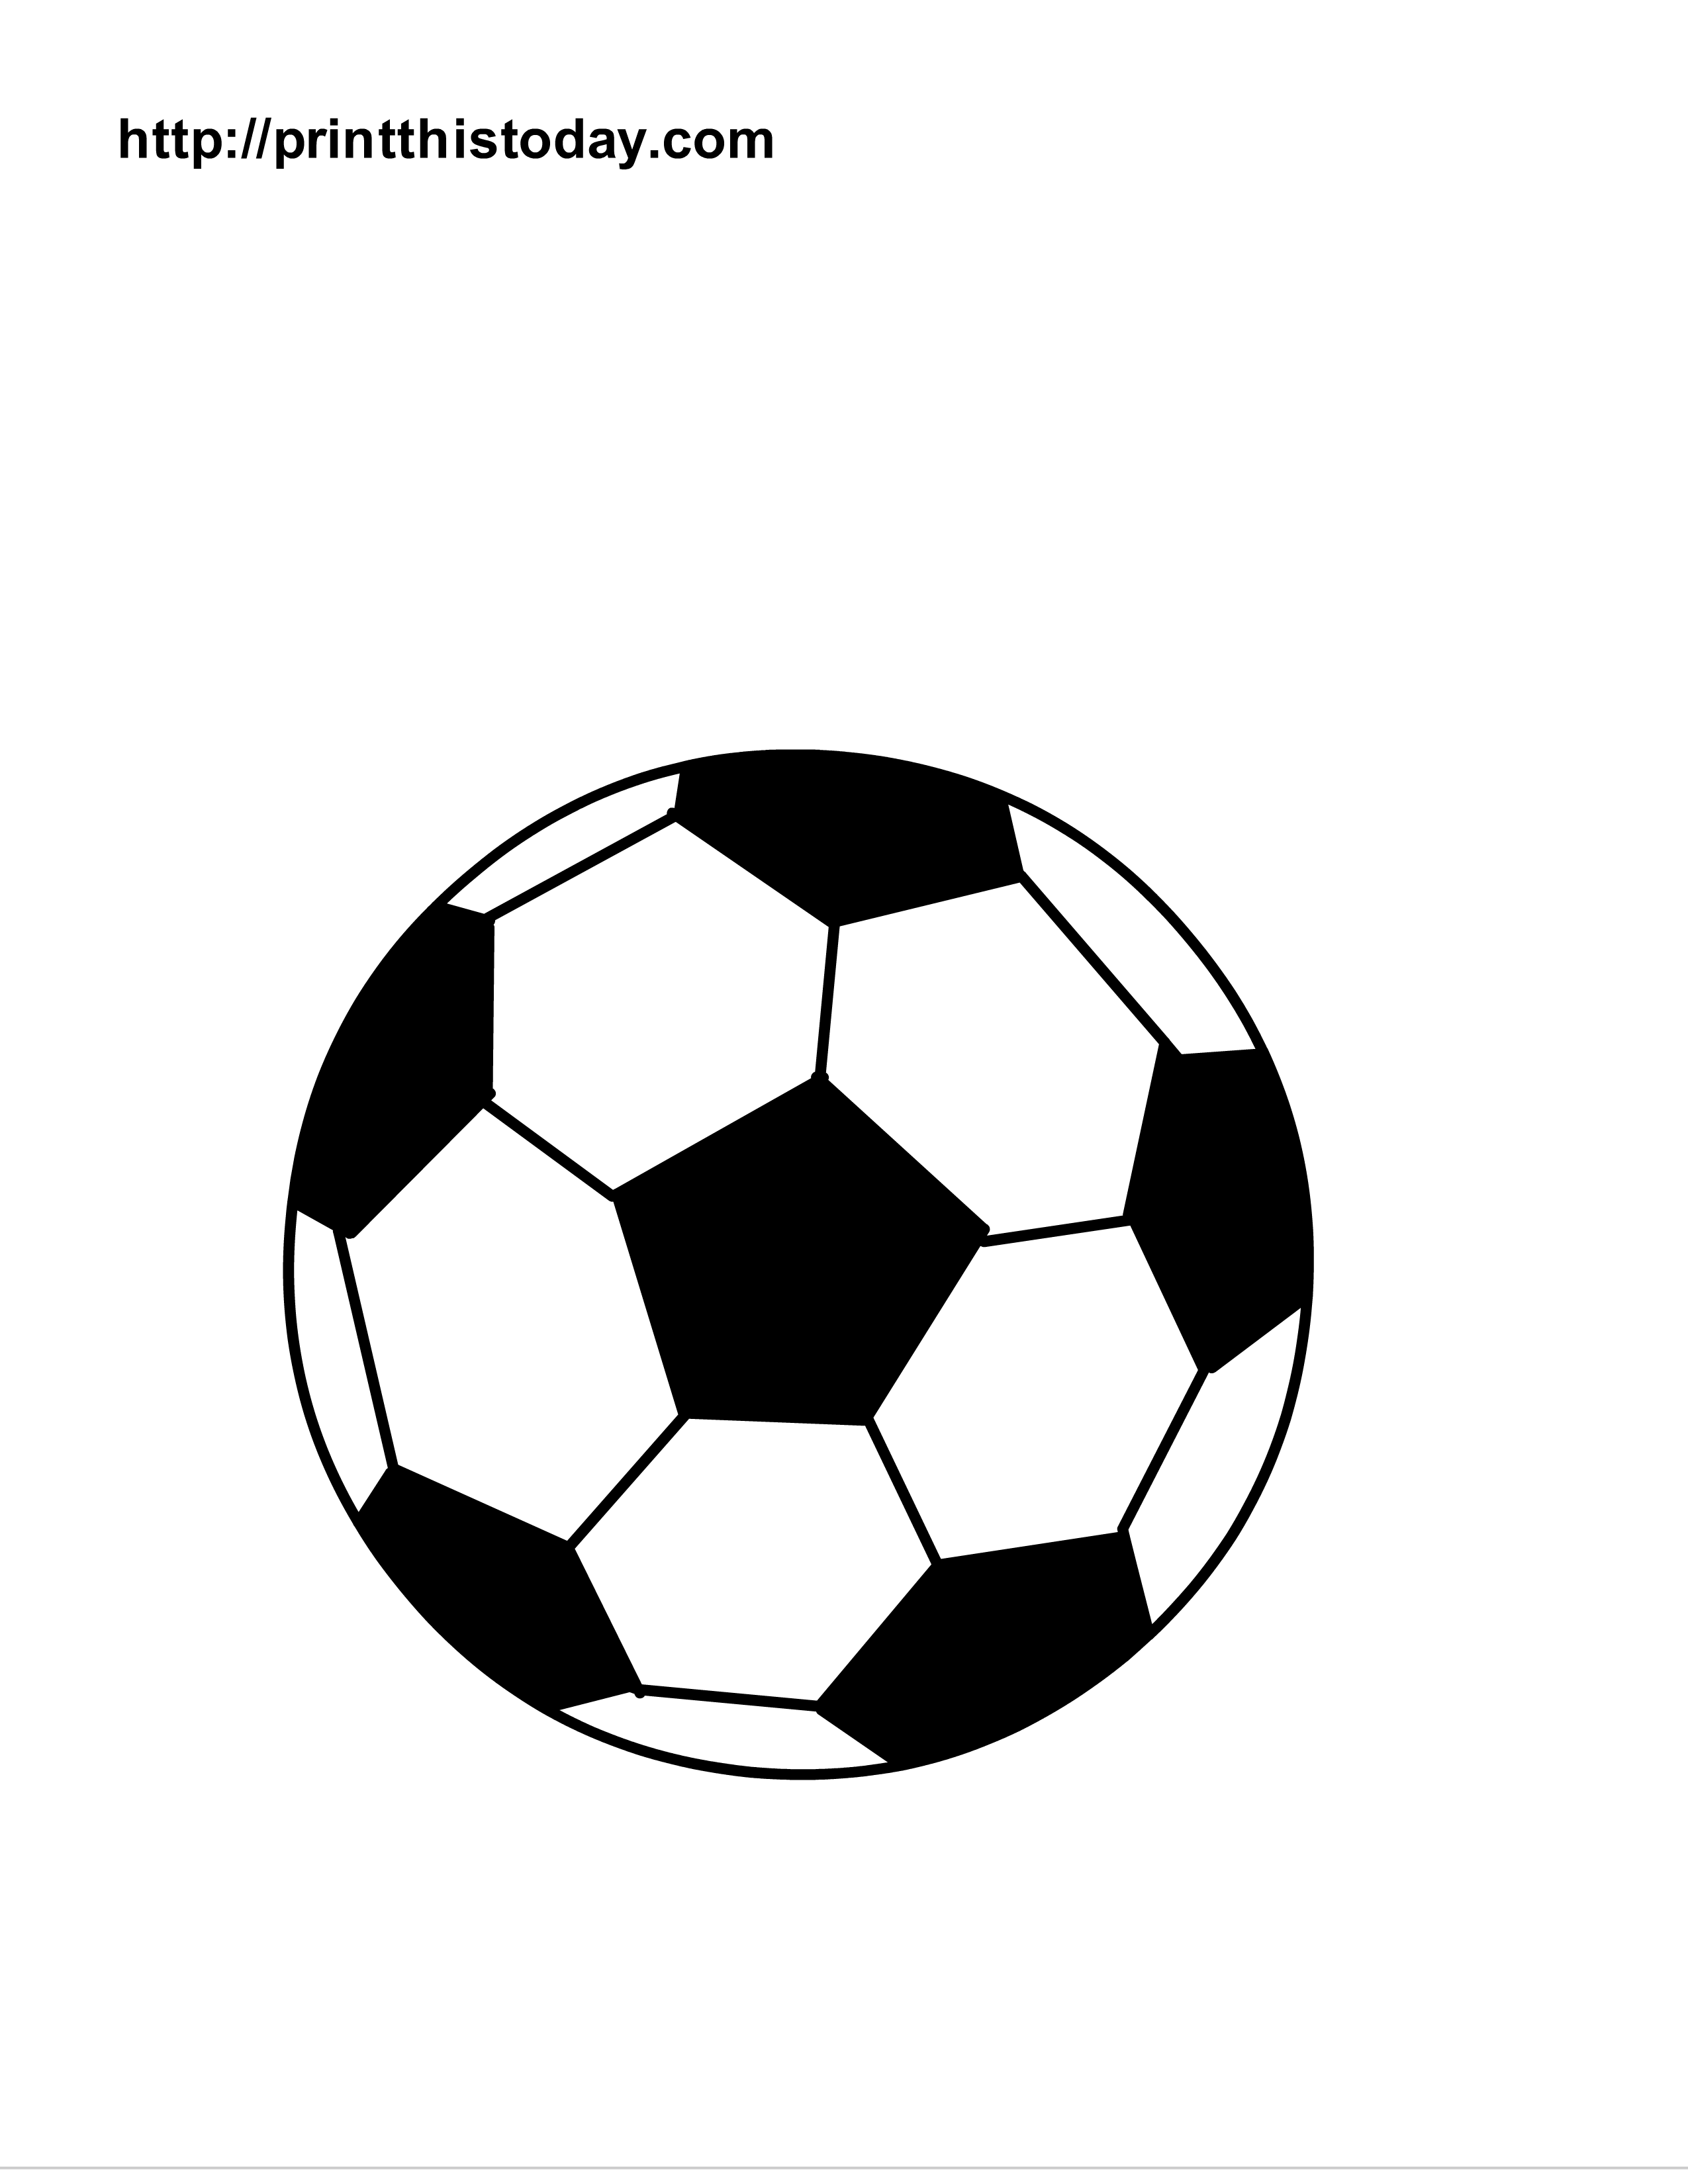 football pictures to print and colour printable football player coloring pages for kids pictures football colour and print to